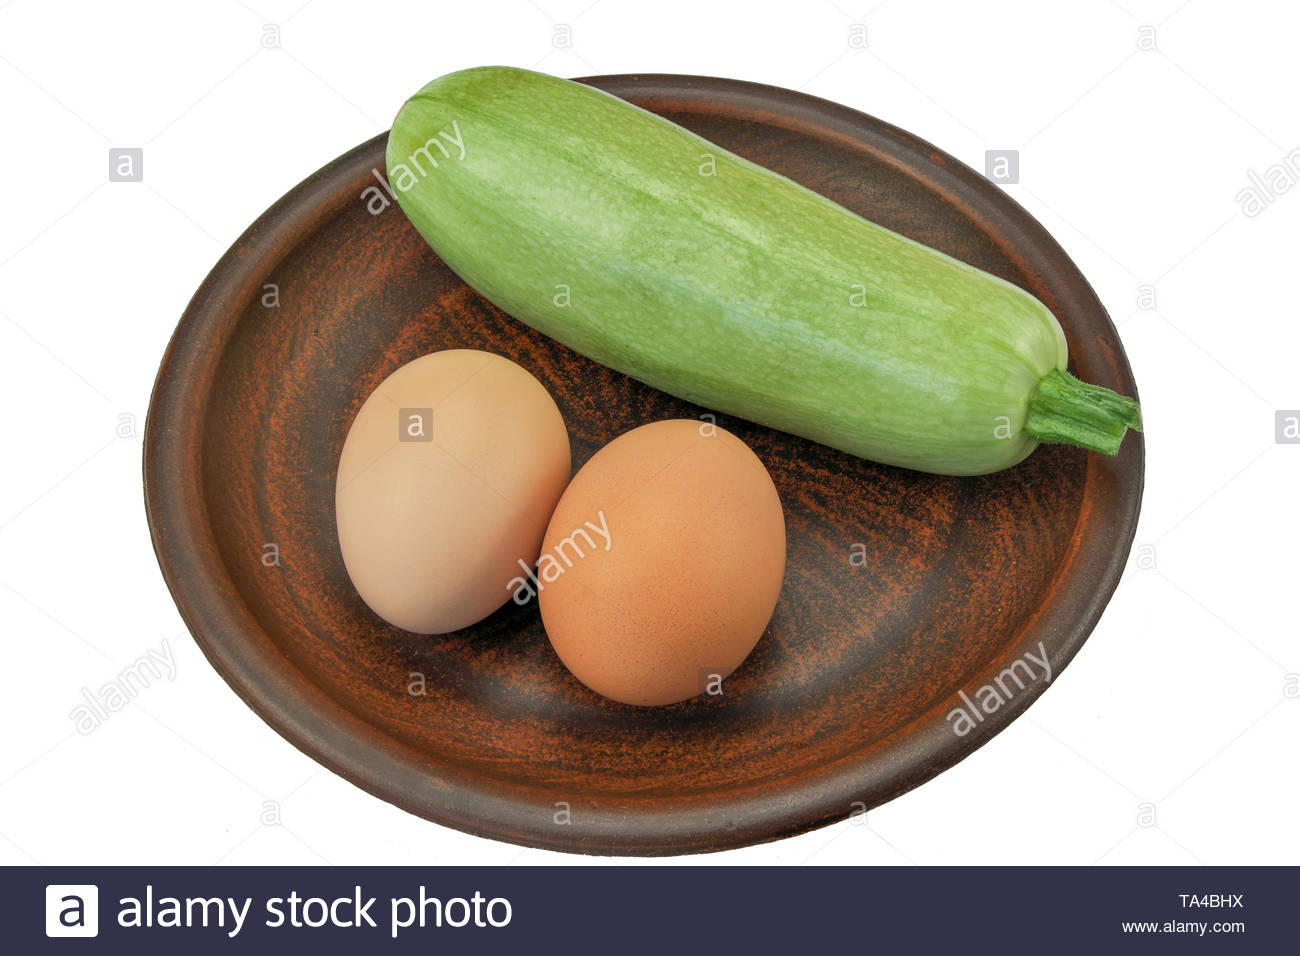 Fresh green zucchini and two eggs on a brown clay plate close-up isolated on a white background - Stock Image